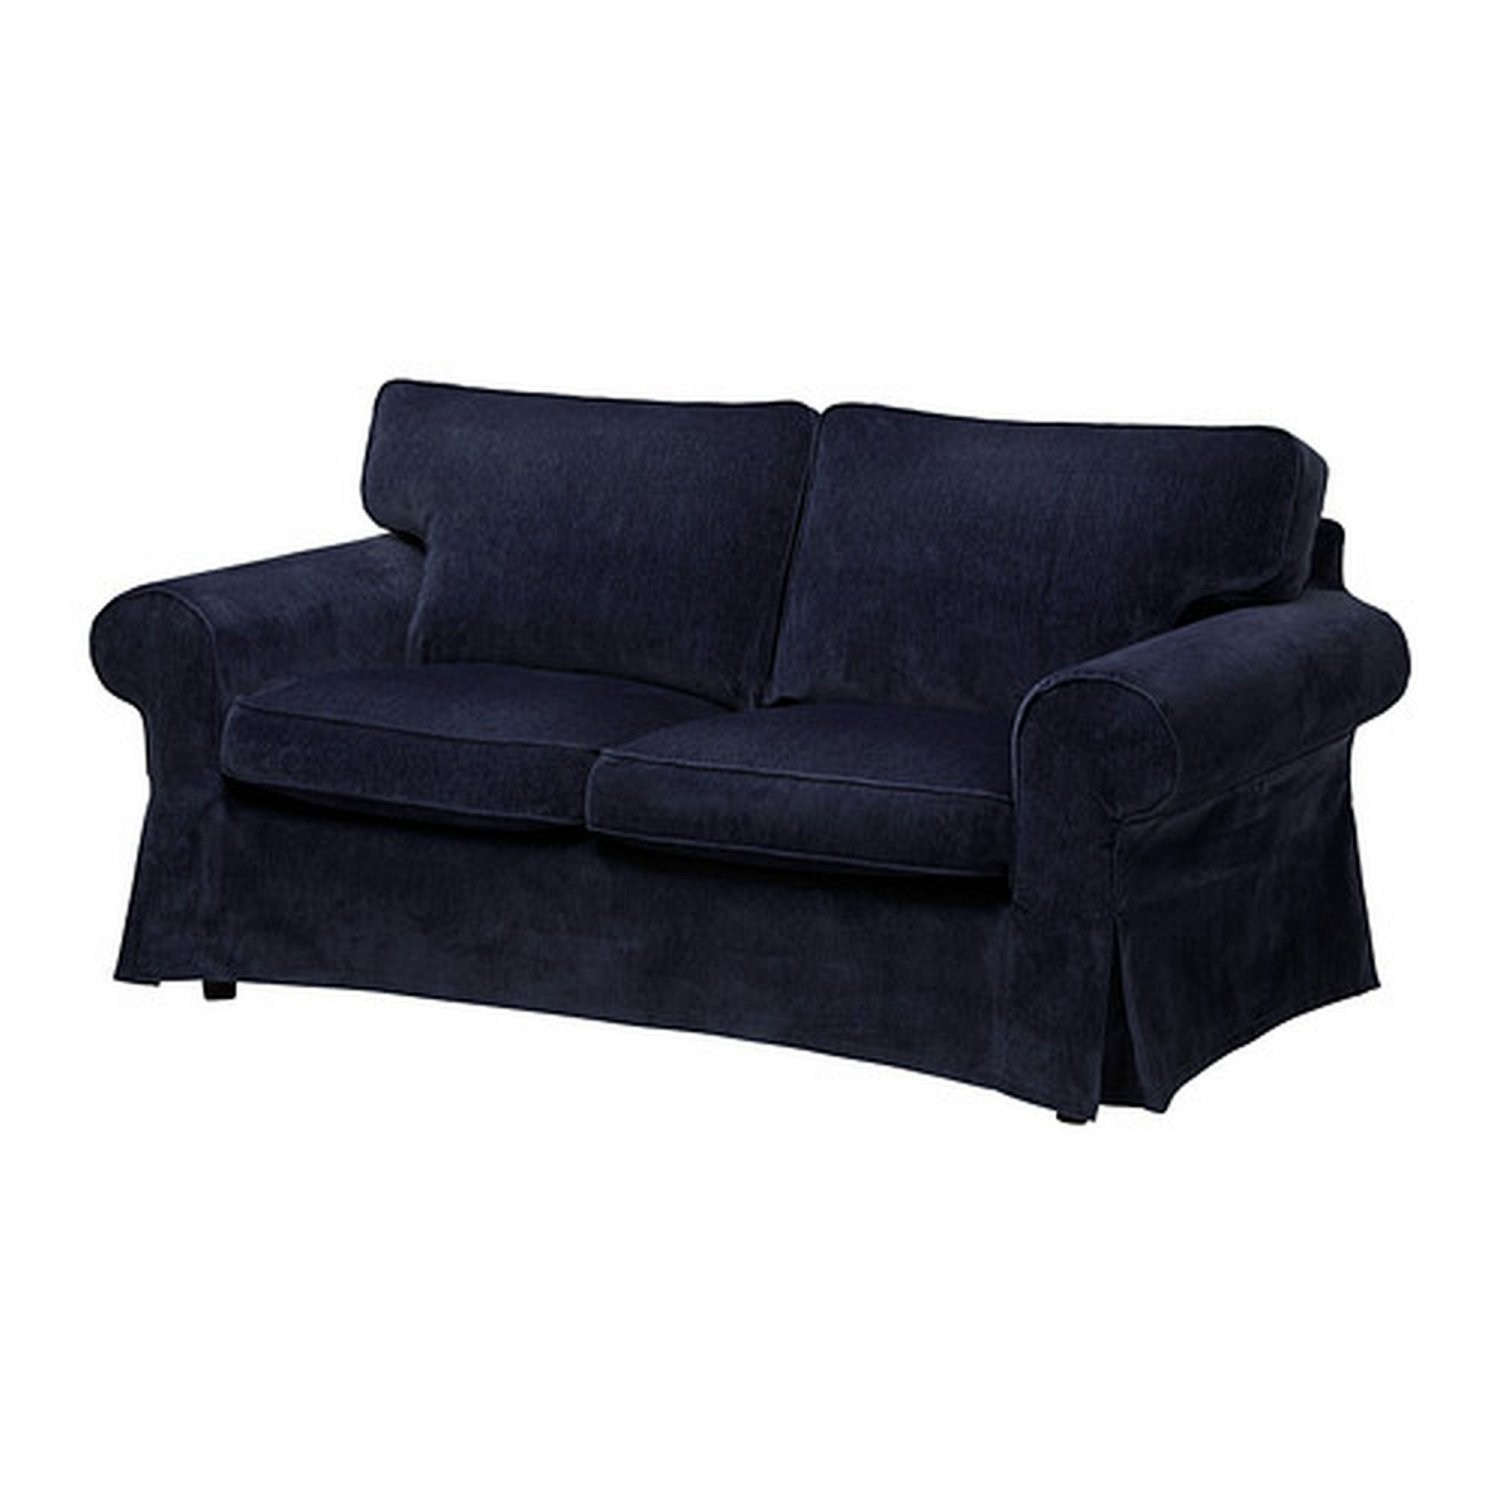 Ikea ektorp 2 seat sofa slipcover loveseat cover vellinge dark blue Couch and loveseat covers